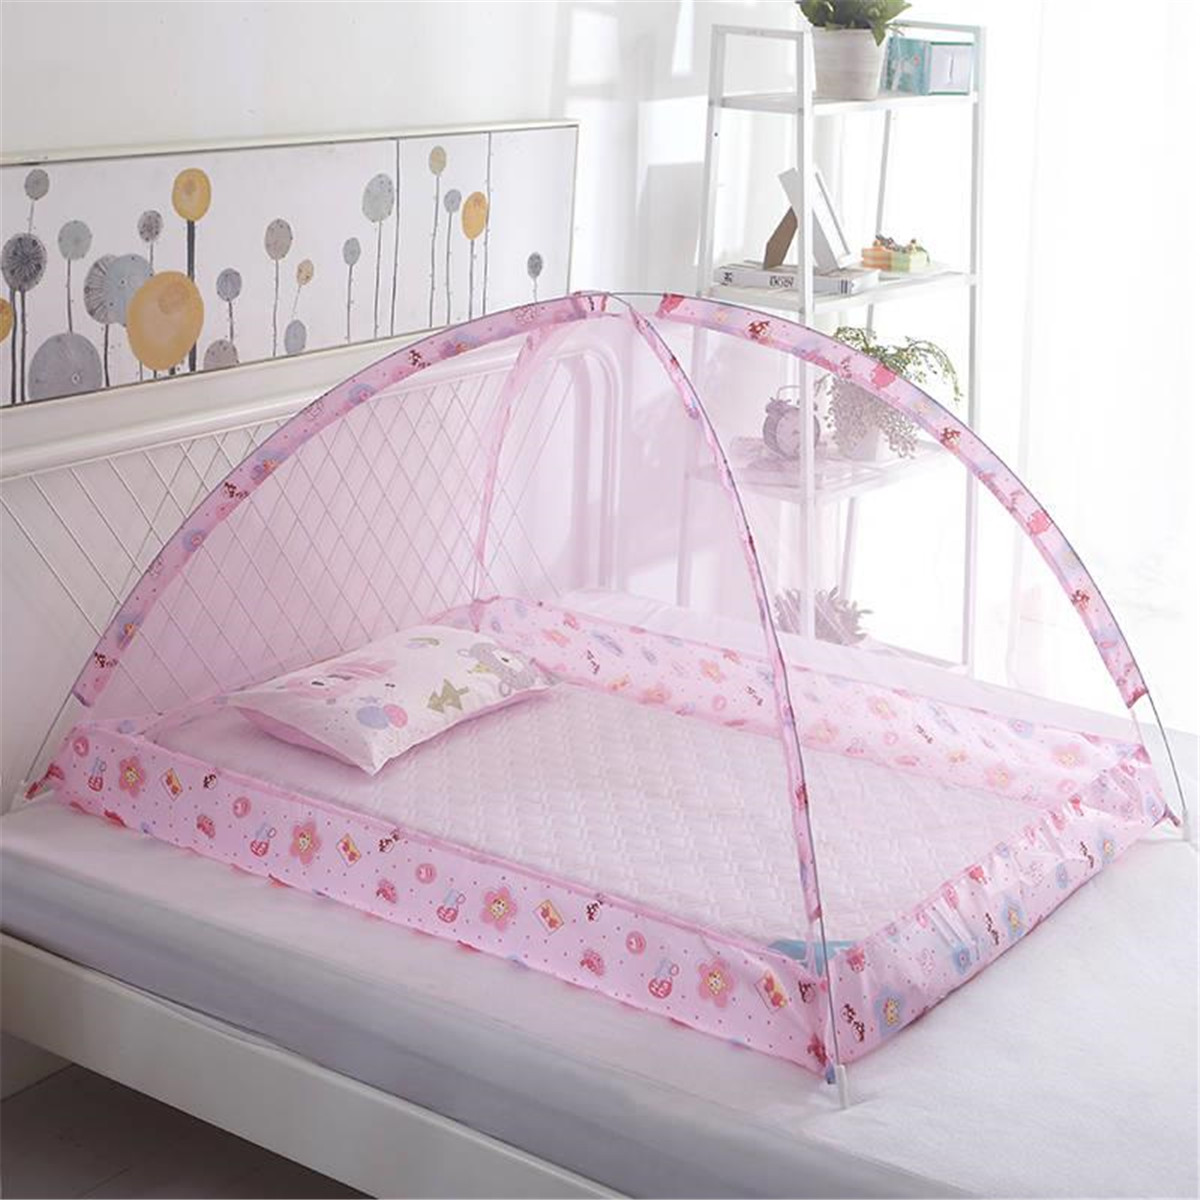 Pink Baby Bed Canopy Mosquito Net Netting Cover Infant Cot Tent Net